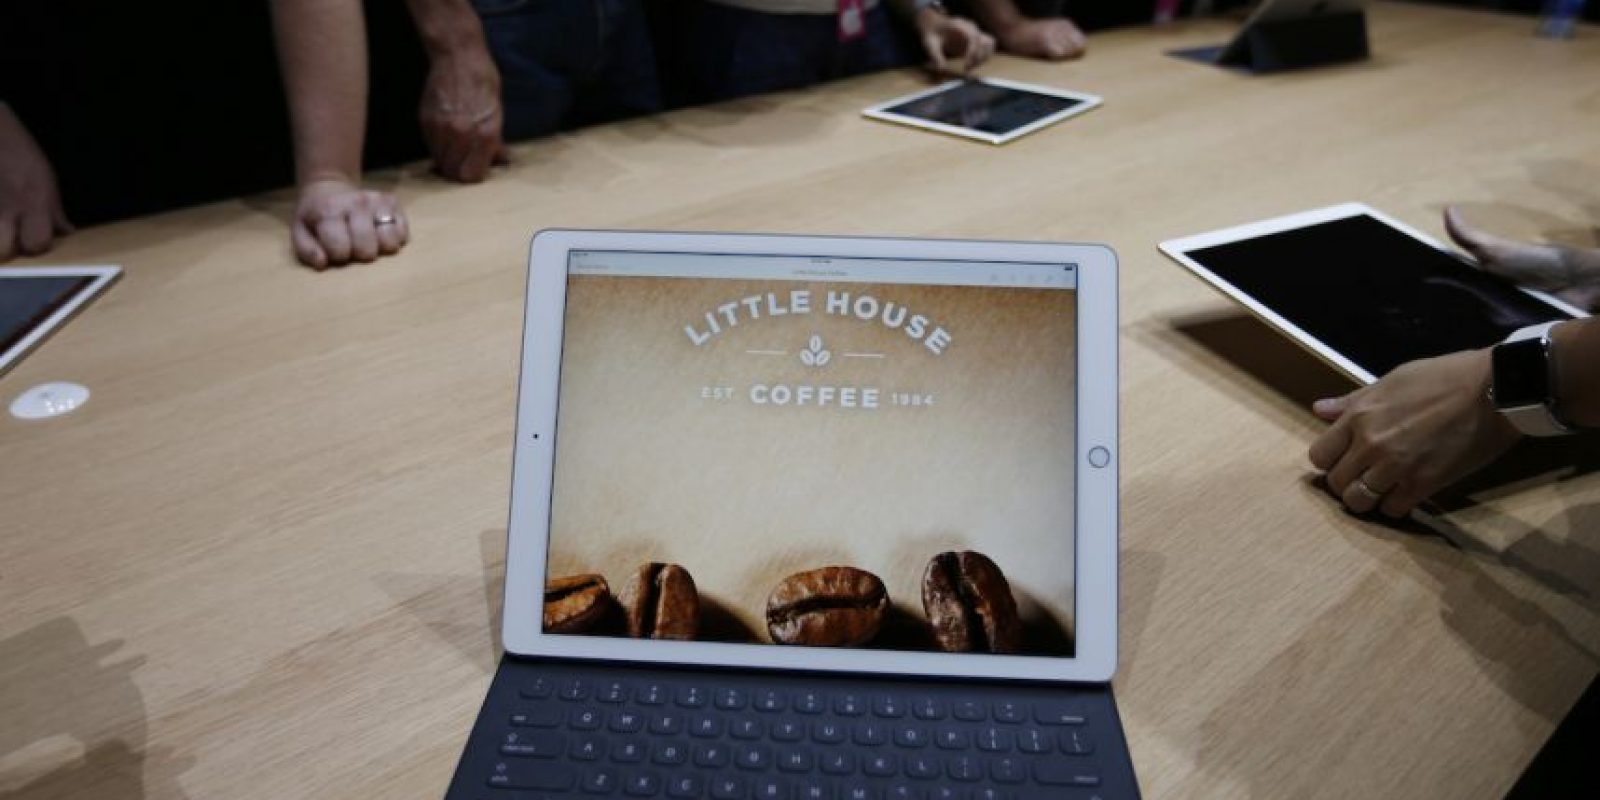 La nueva tableta de Apple llegará a América Latina. Foto: Getty Images